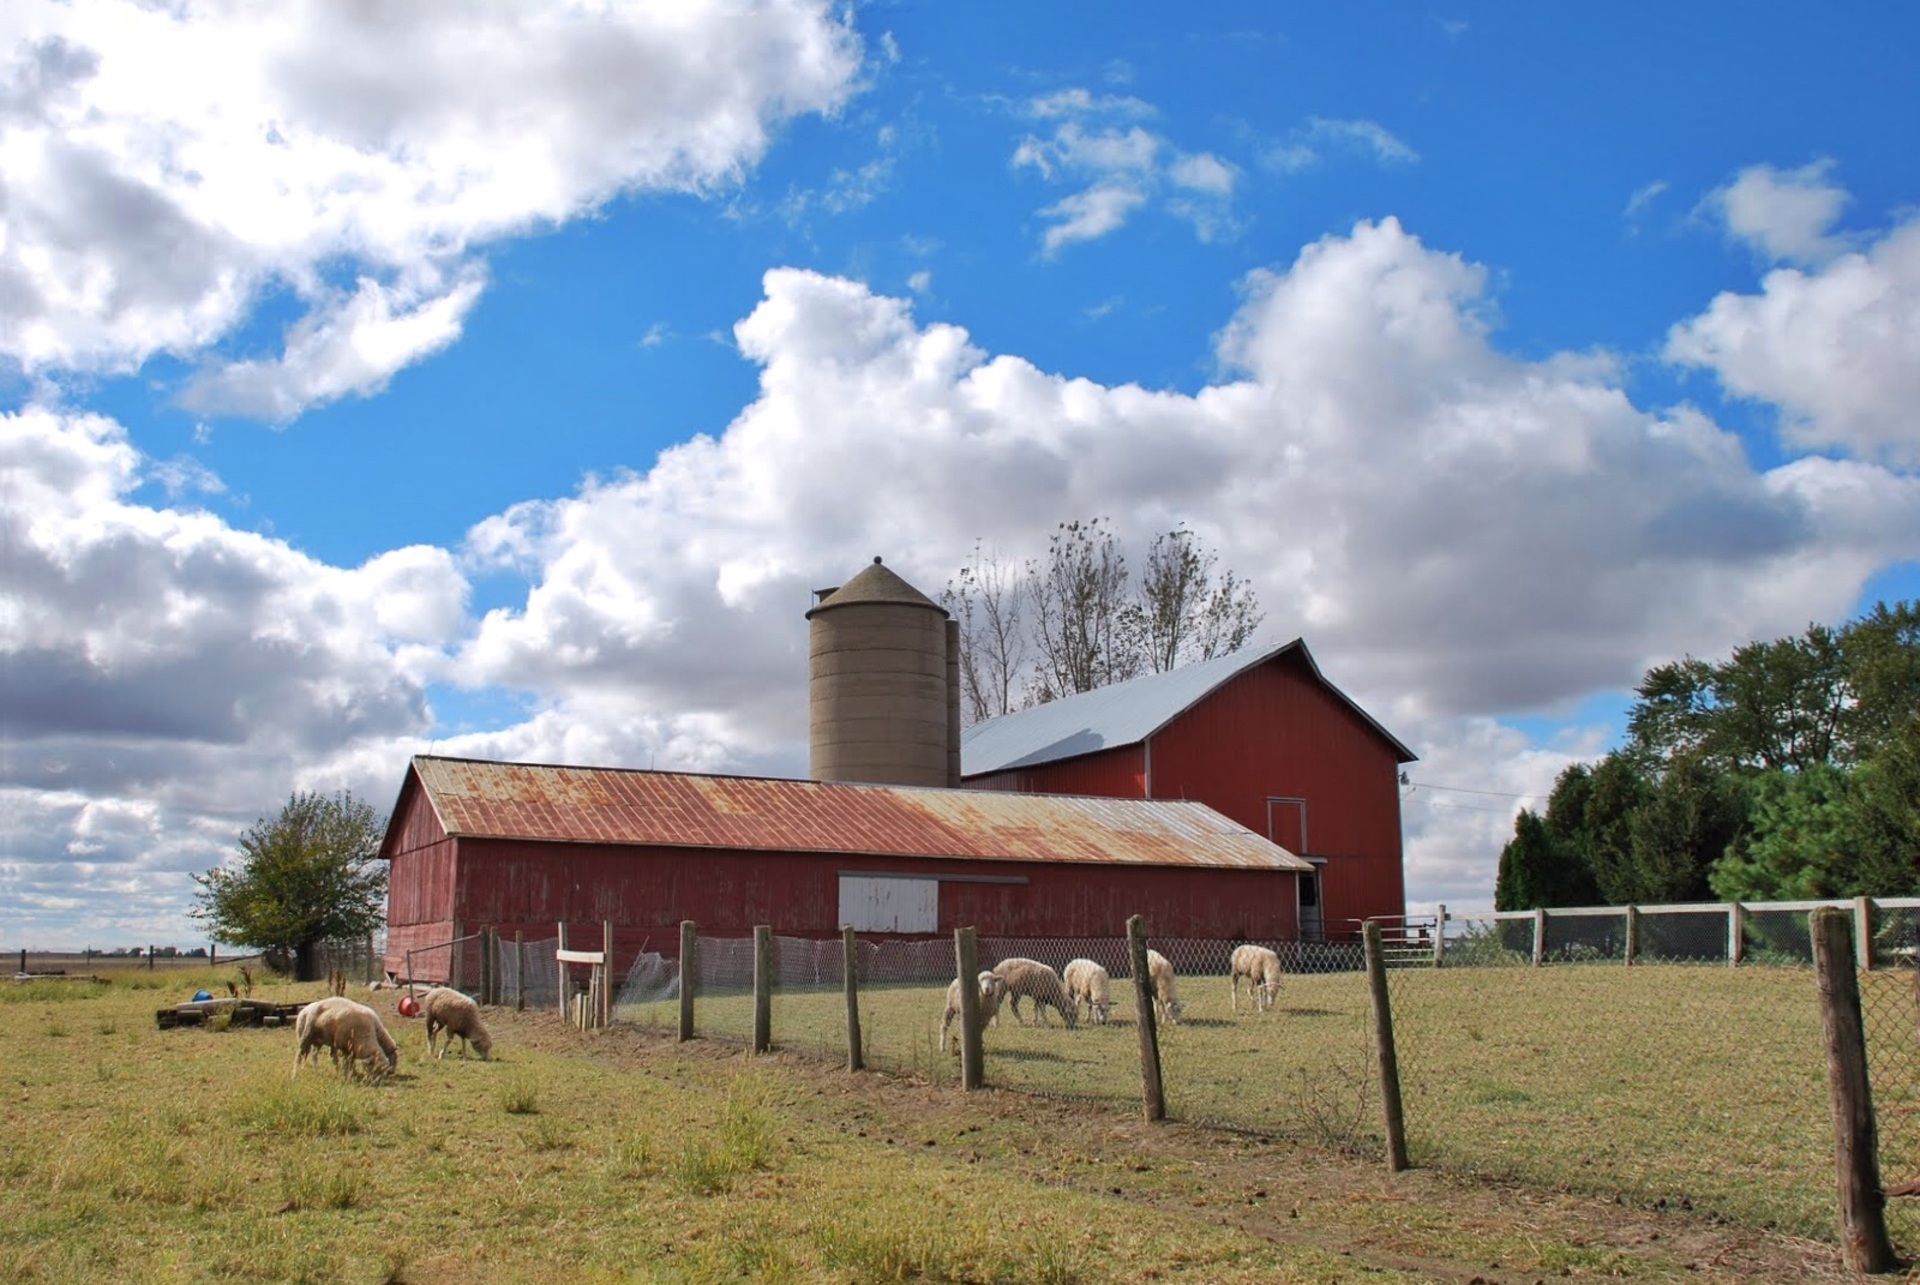 Red barn beneath blue sky. Sheep graze In a pasture beside a rustic red barn beneath a bright blue sky filled with fluffy clouds